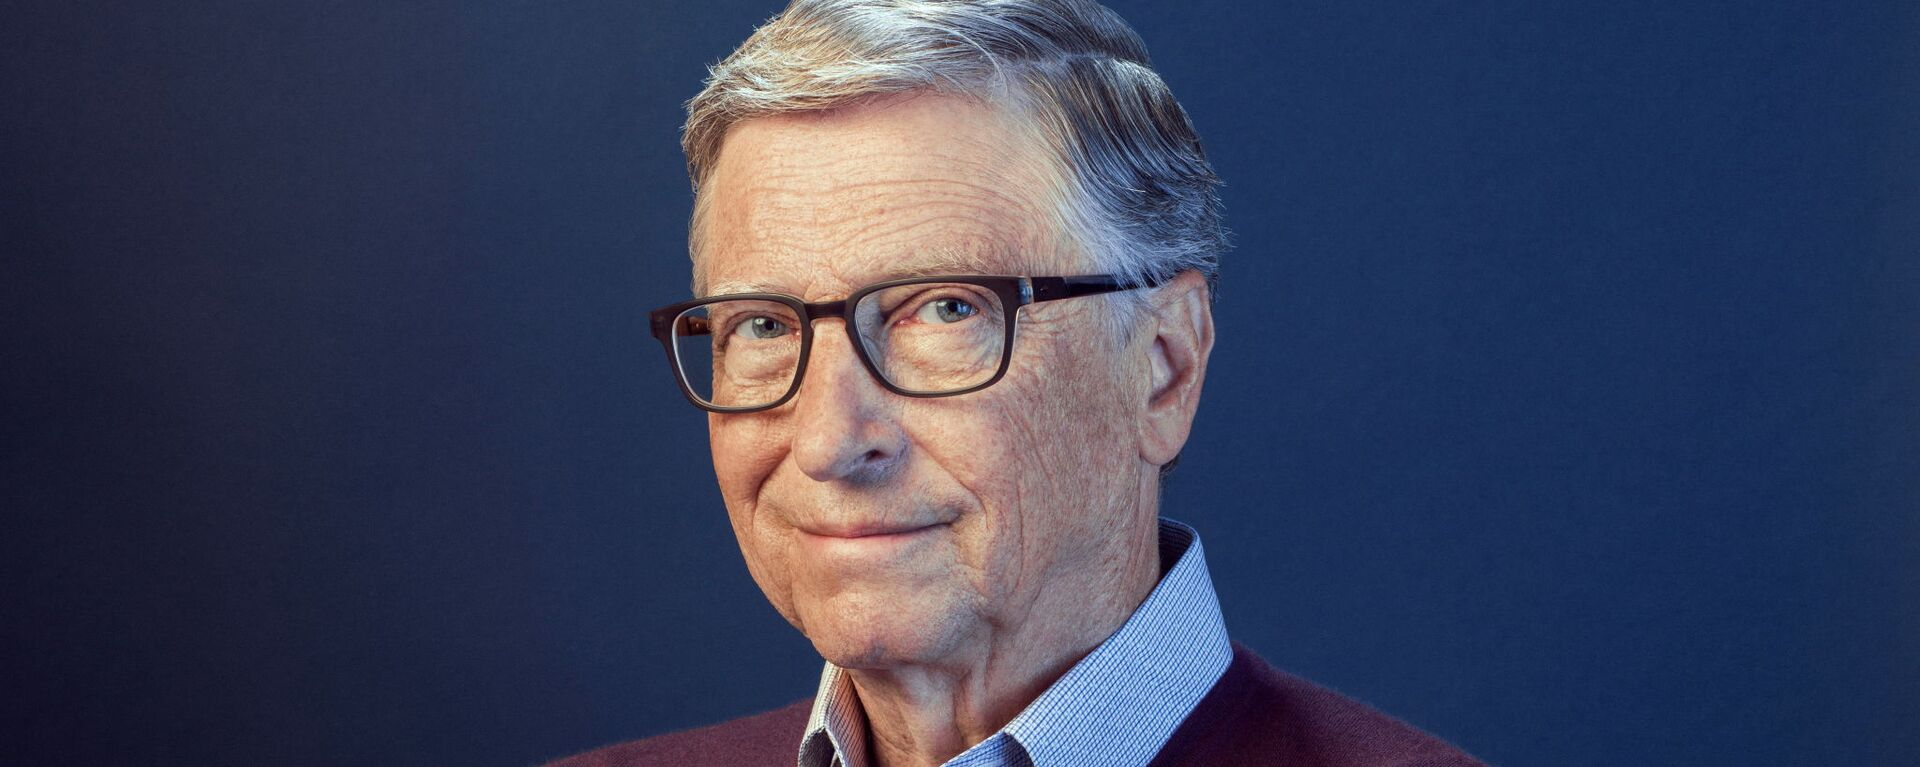 Bill Gates poses in this undated handout photo obtained by Reuters on February 15, 2021 - Sputnik Italia, 1920, 11.06.2021